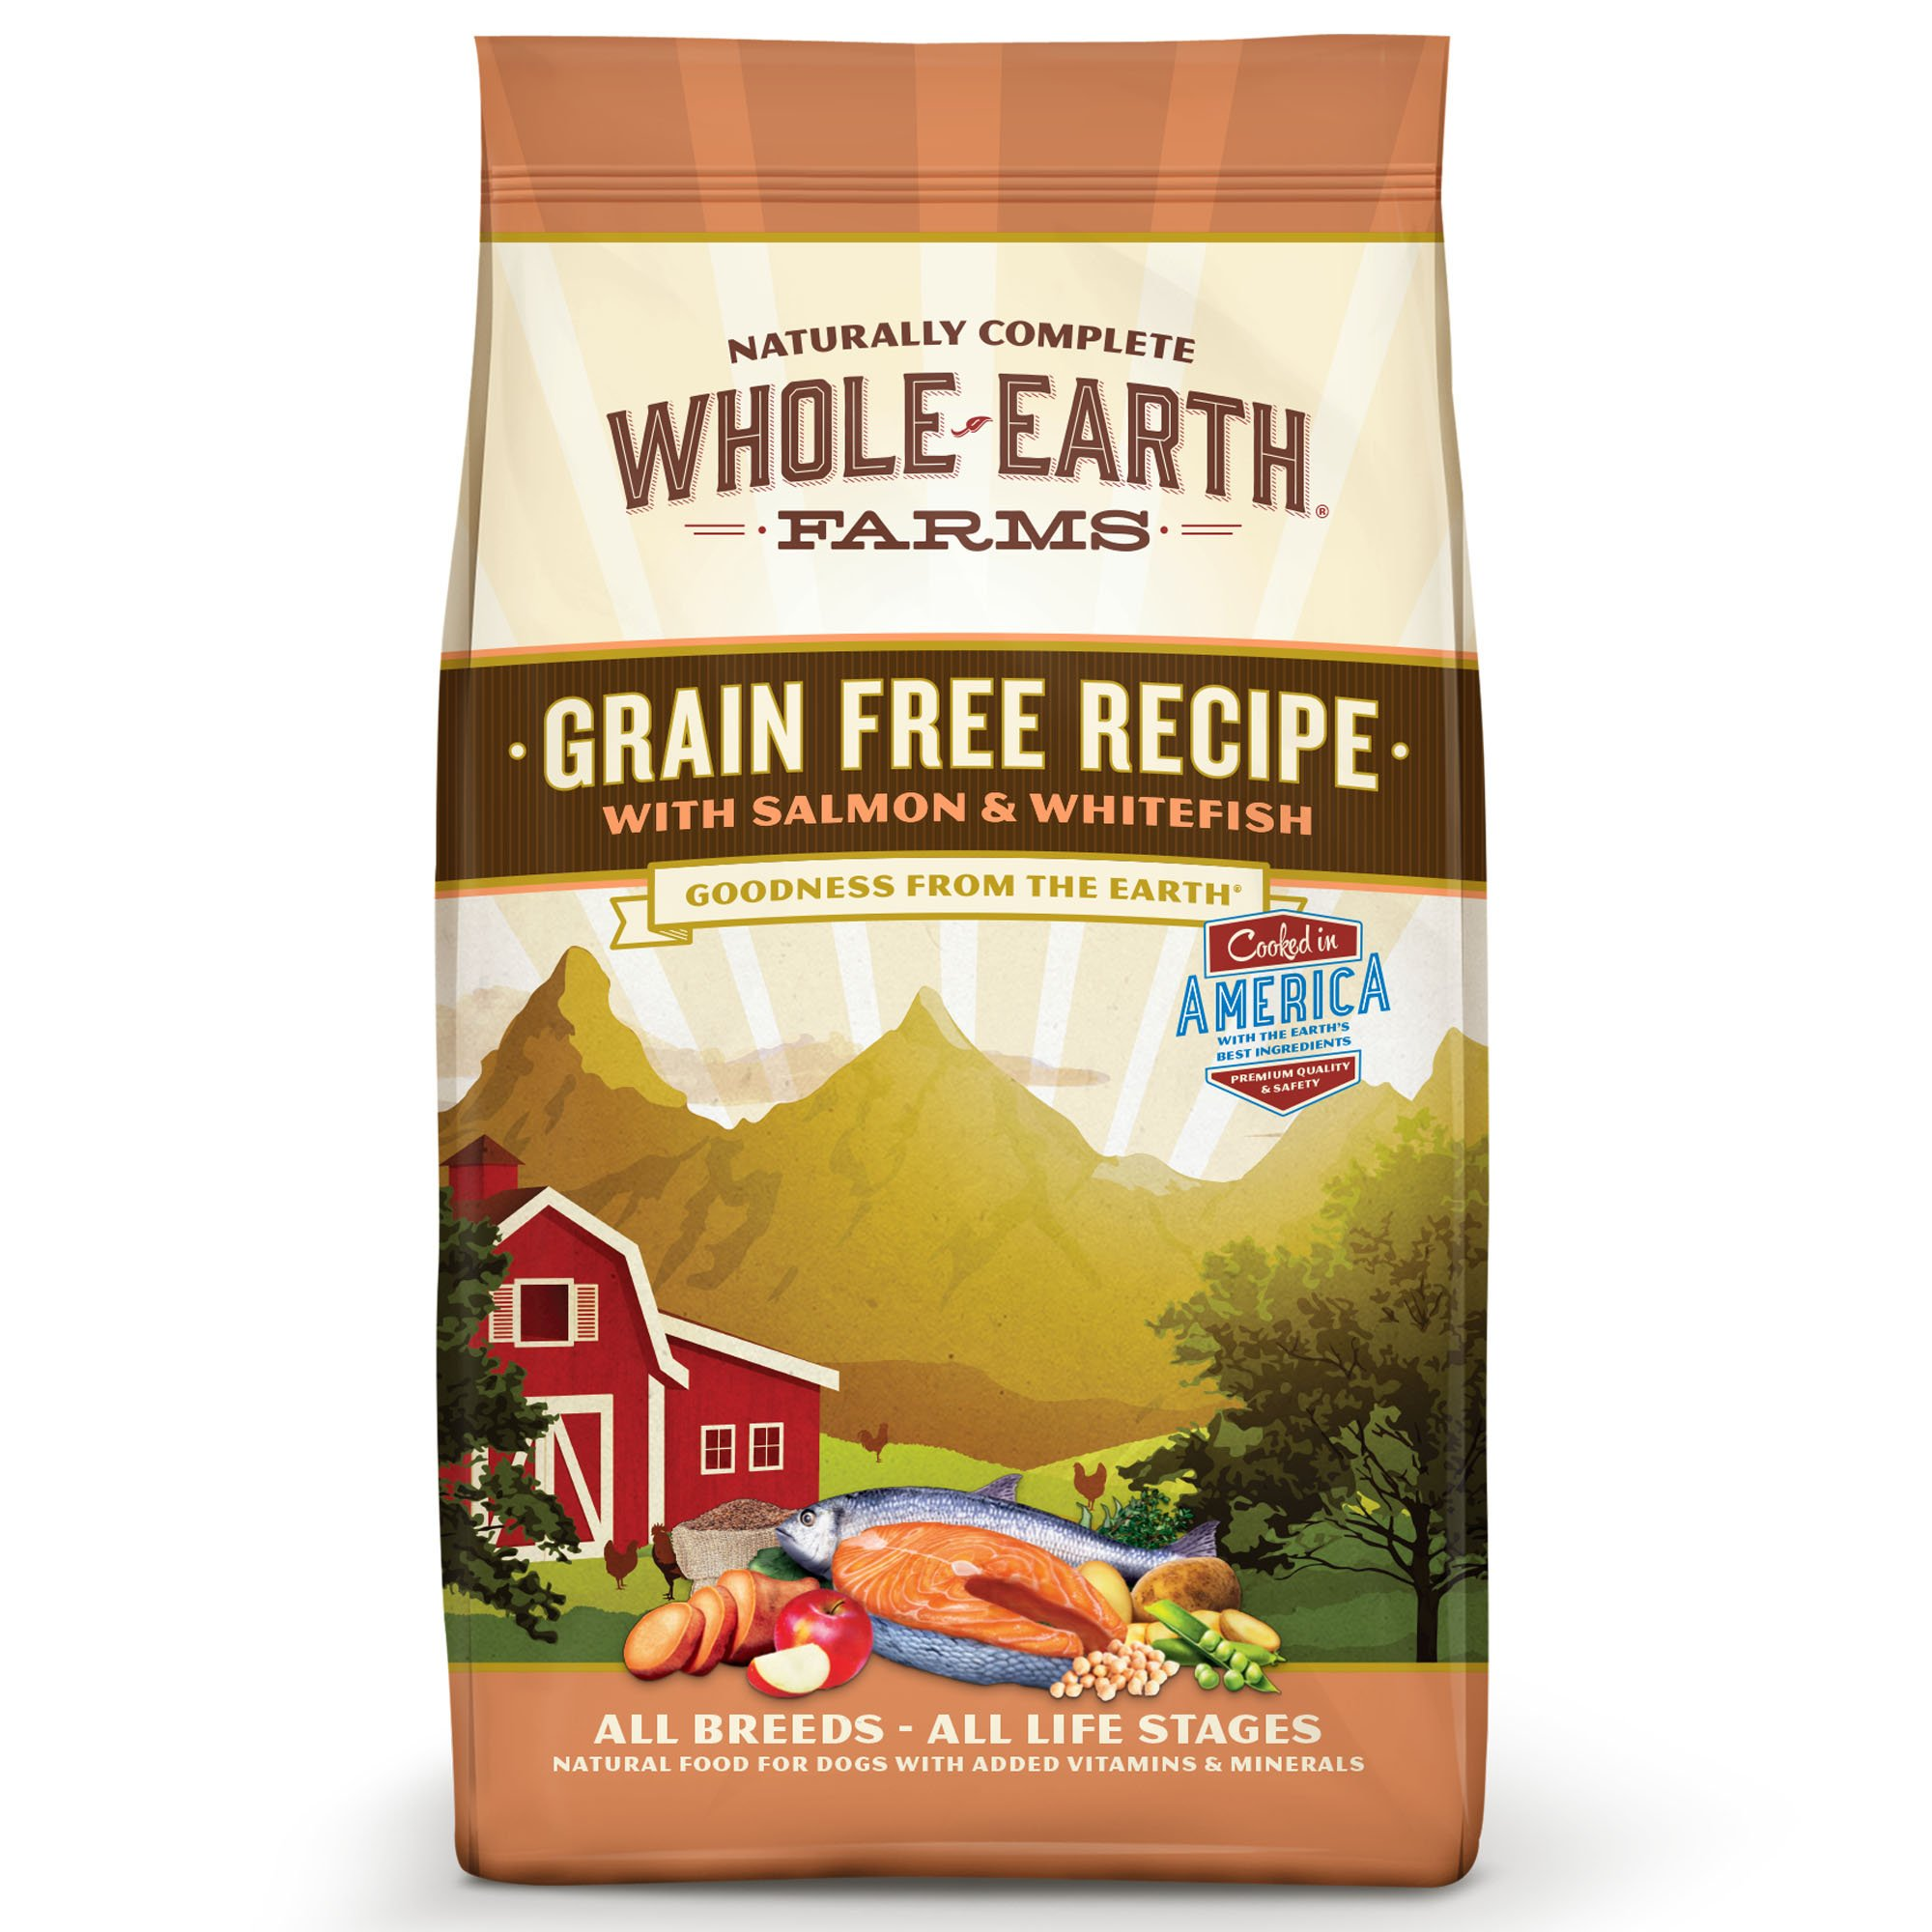 Whole Earth Farms Grain Free Recipe with Salmon & Whitefish Dry Dog Food, 4 lbs.